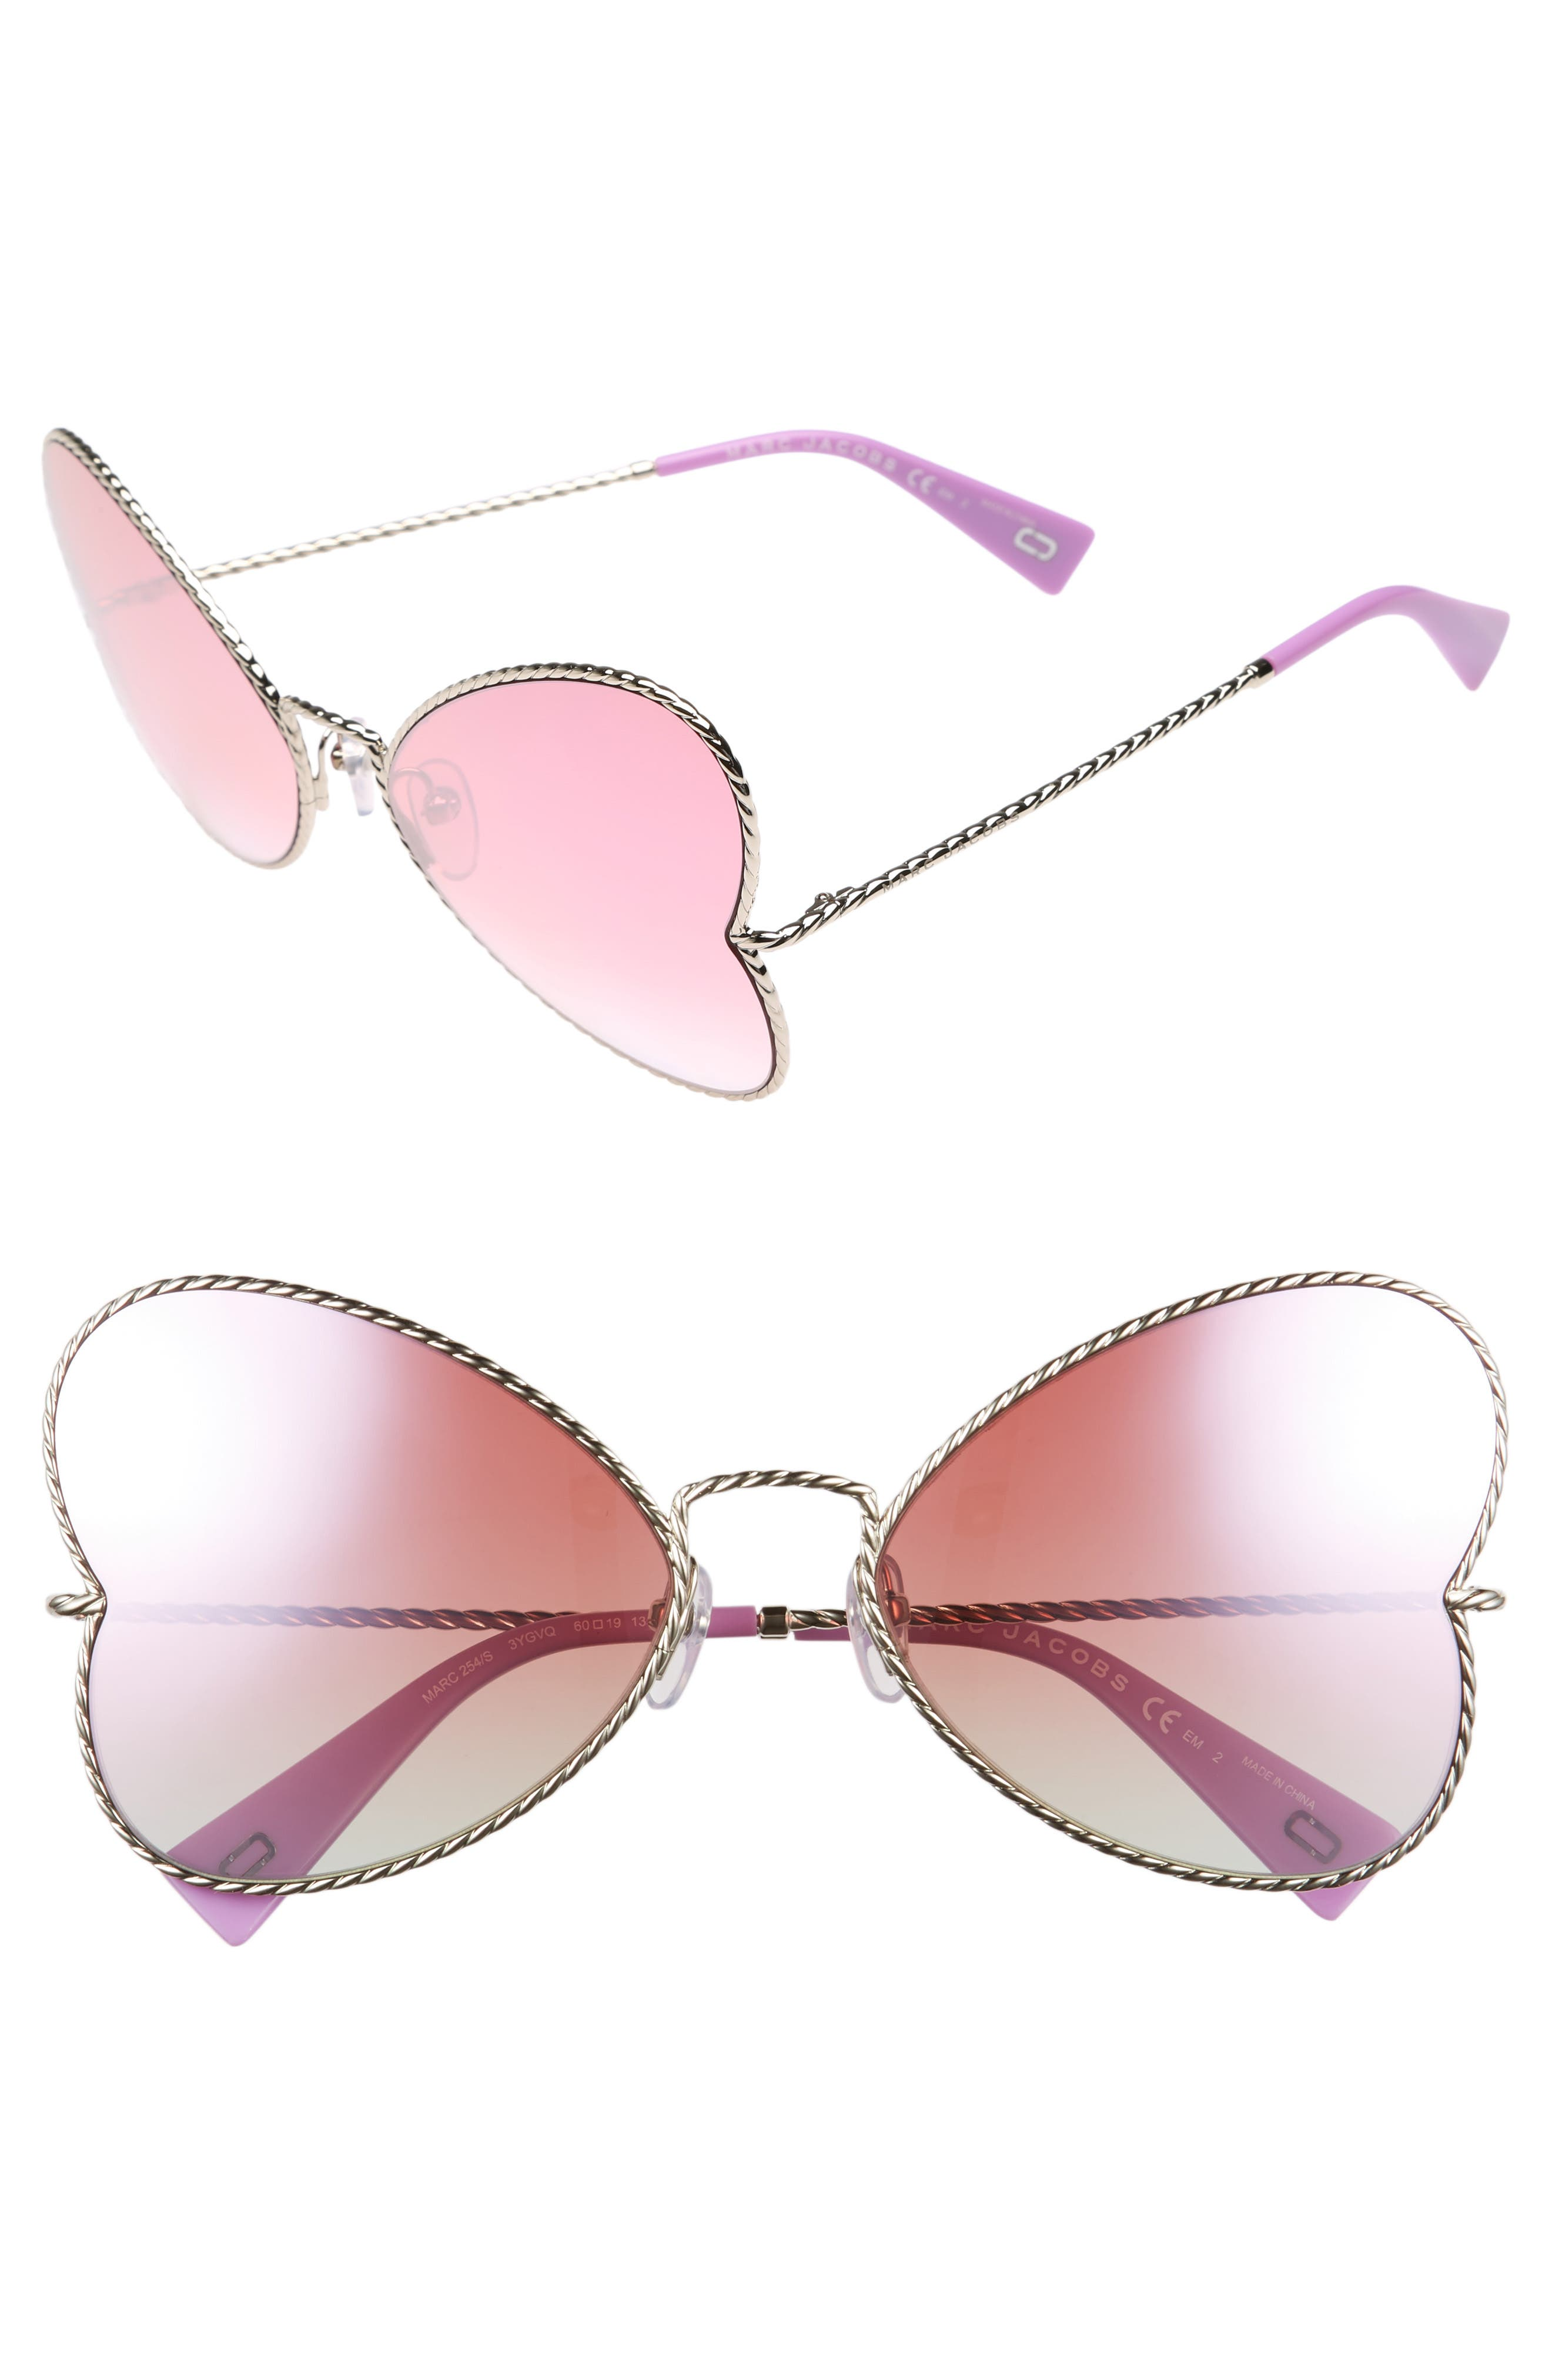 Alternate Image 1 Selected - MARC JACOBS 60mm Heart Sunglasses